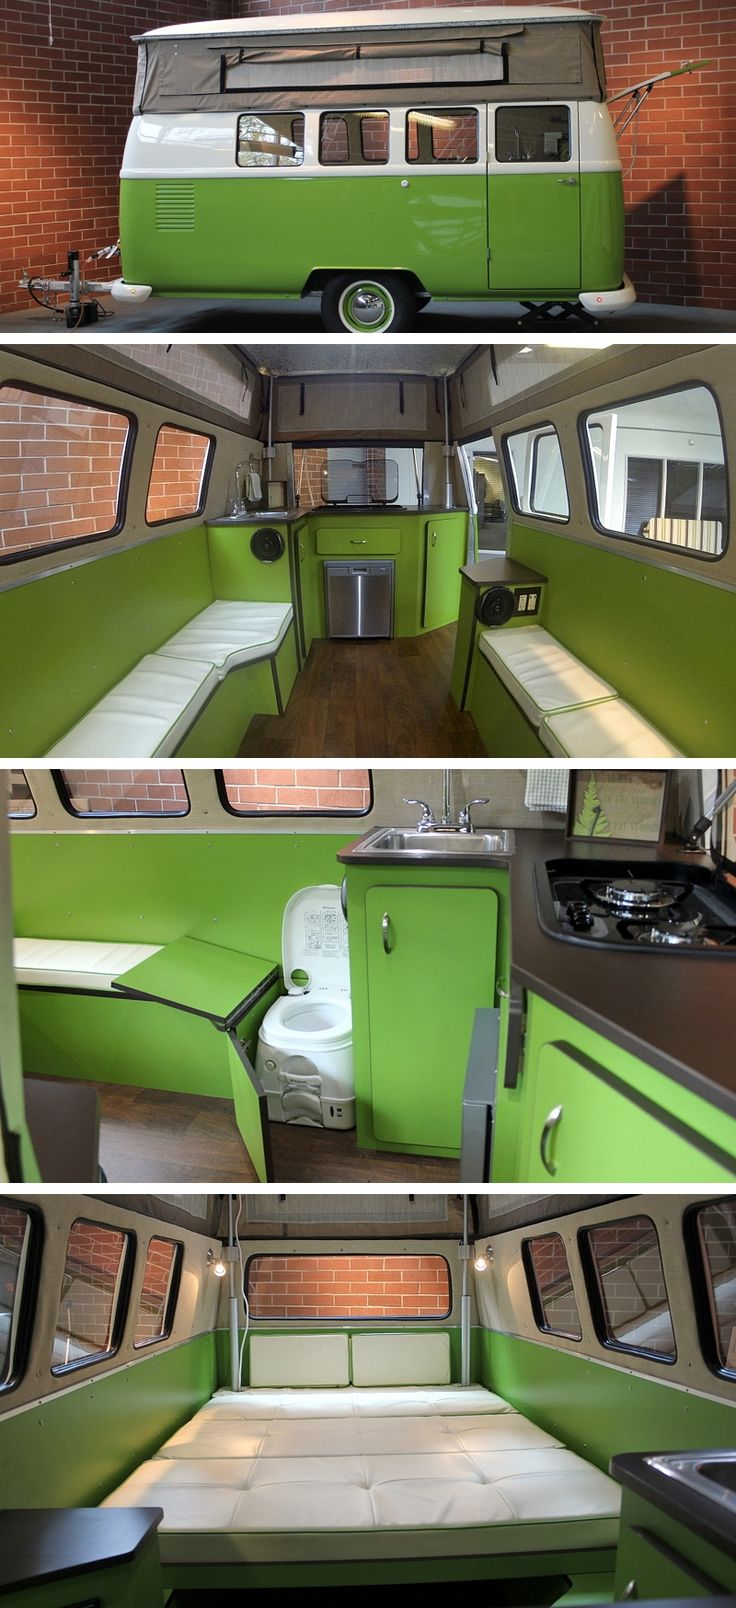 VW Camper Van Trailer - by Dub-Box USA..Re-Pin brought to you by #CarInsuranceagents at #HouseofInsurance in #EugeneOregon